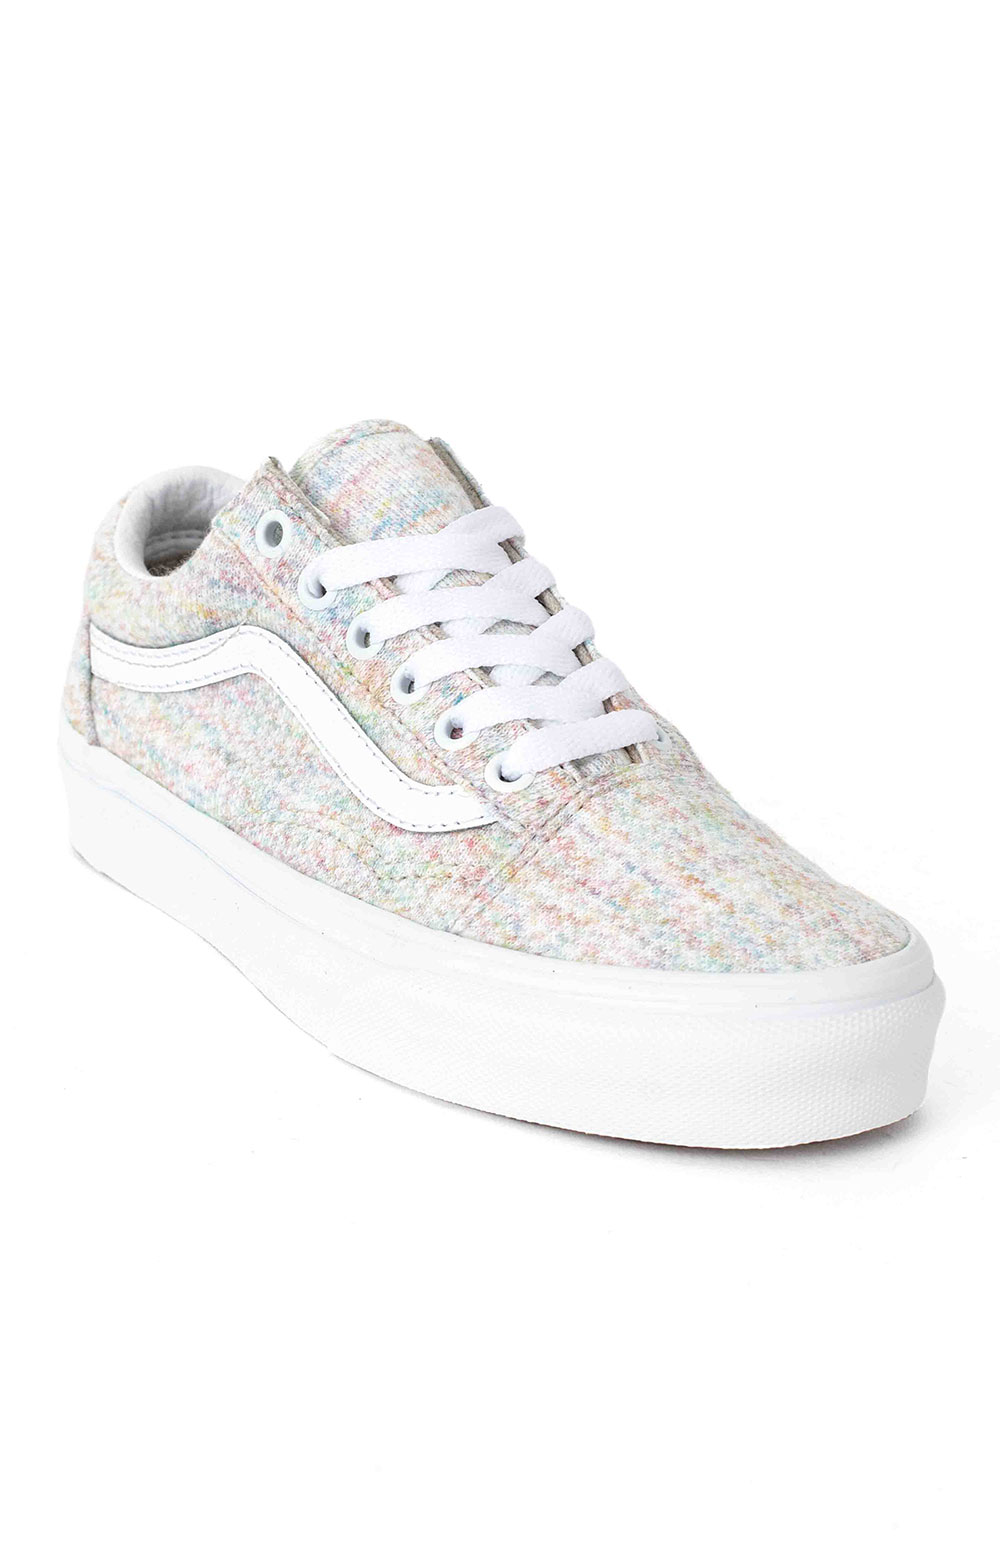 (U3BWN5) Rainbow Jersey Old Skool Shoe - Multi 3